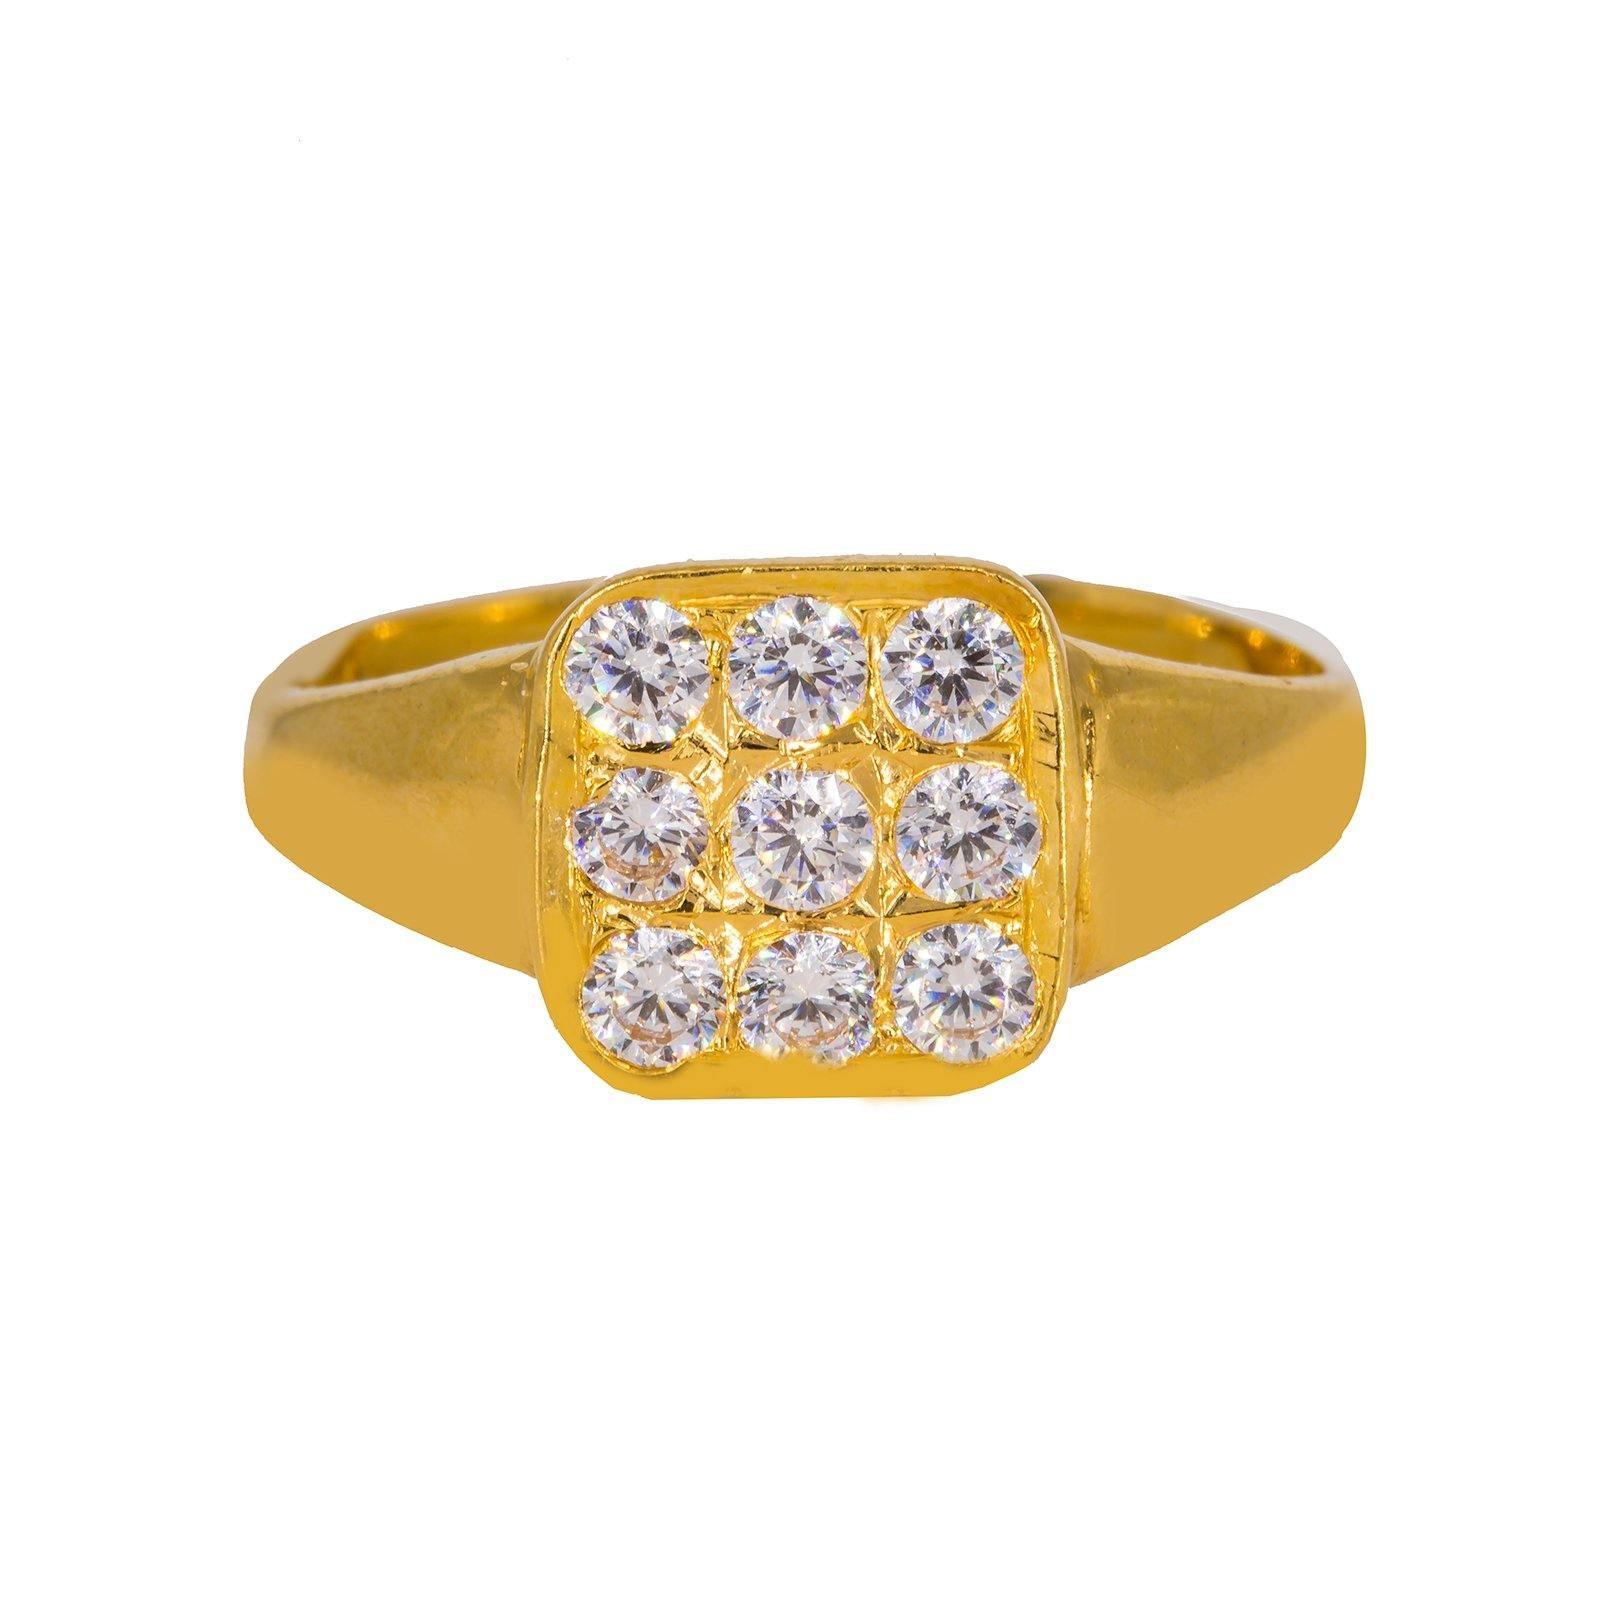 22K Yellow Gold Men's Ring W/ Nine Cubic Zirconia & Smooth Band